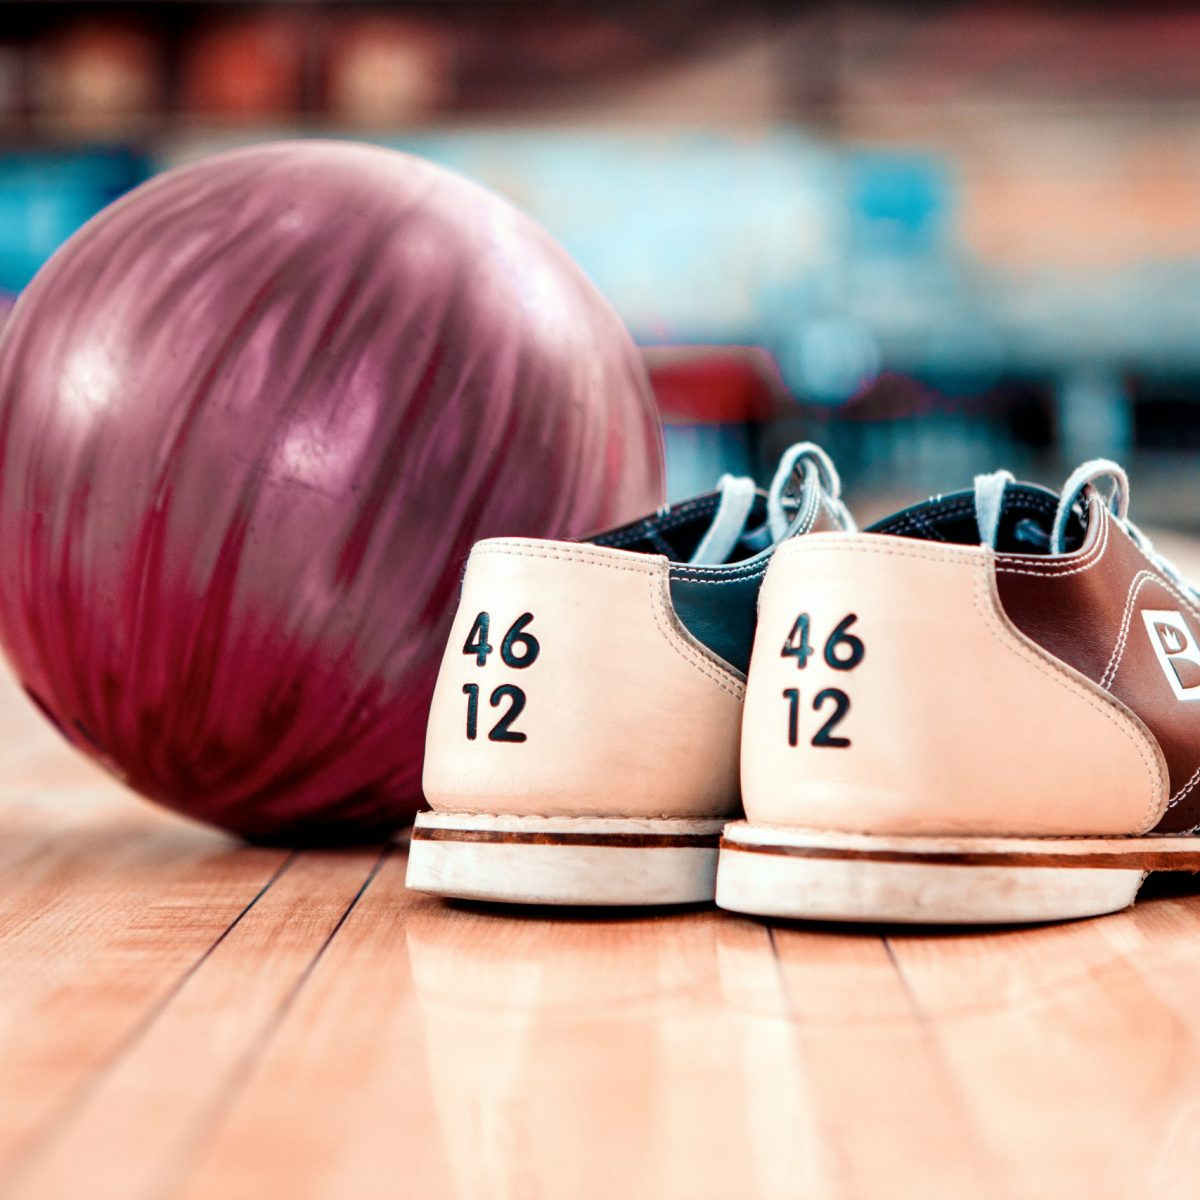 Bowling equipment. Close up of bowling shoes and lilac ball lying on bowling alley